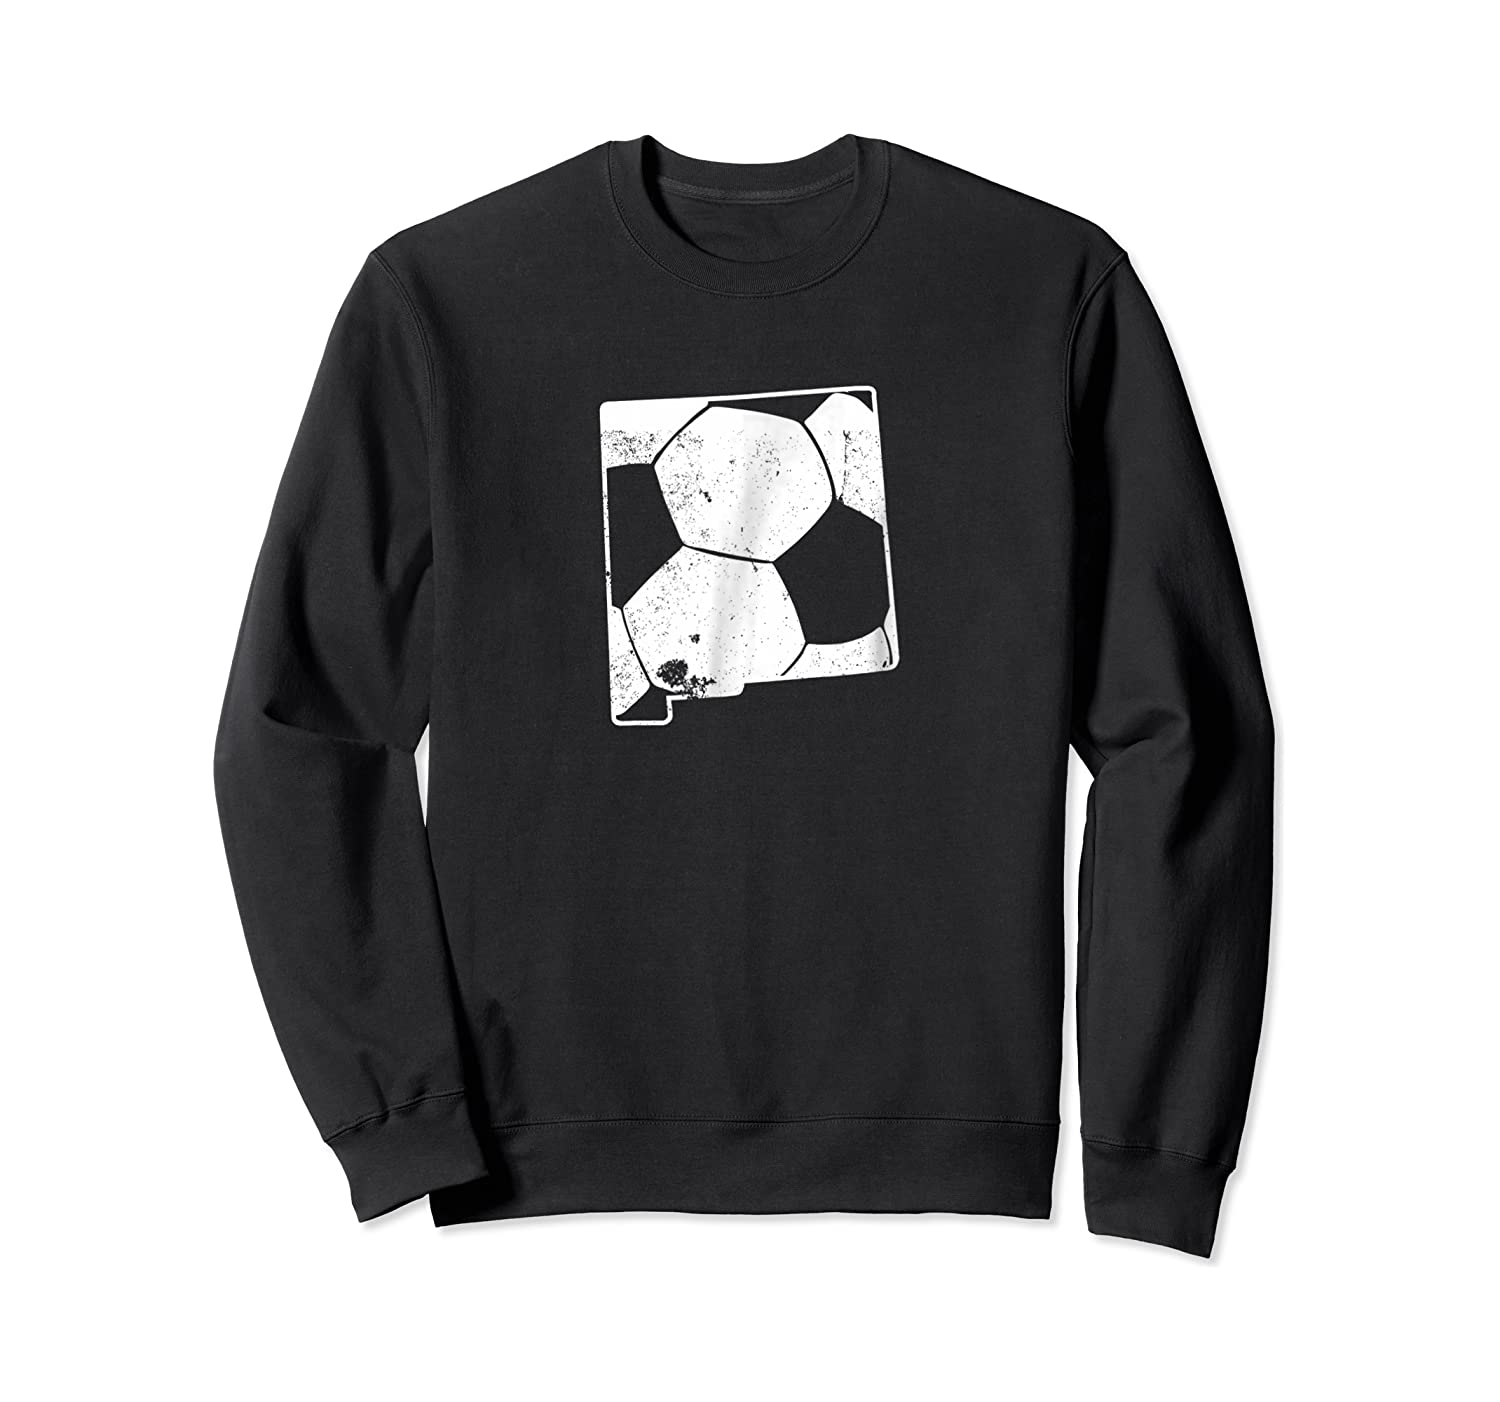 Soccer Gear New Mexico Soccer Shirts Crewneck Sweater